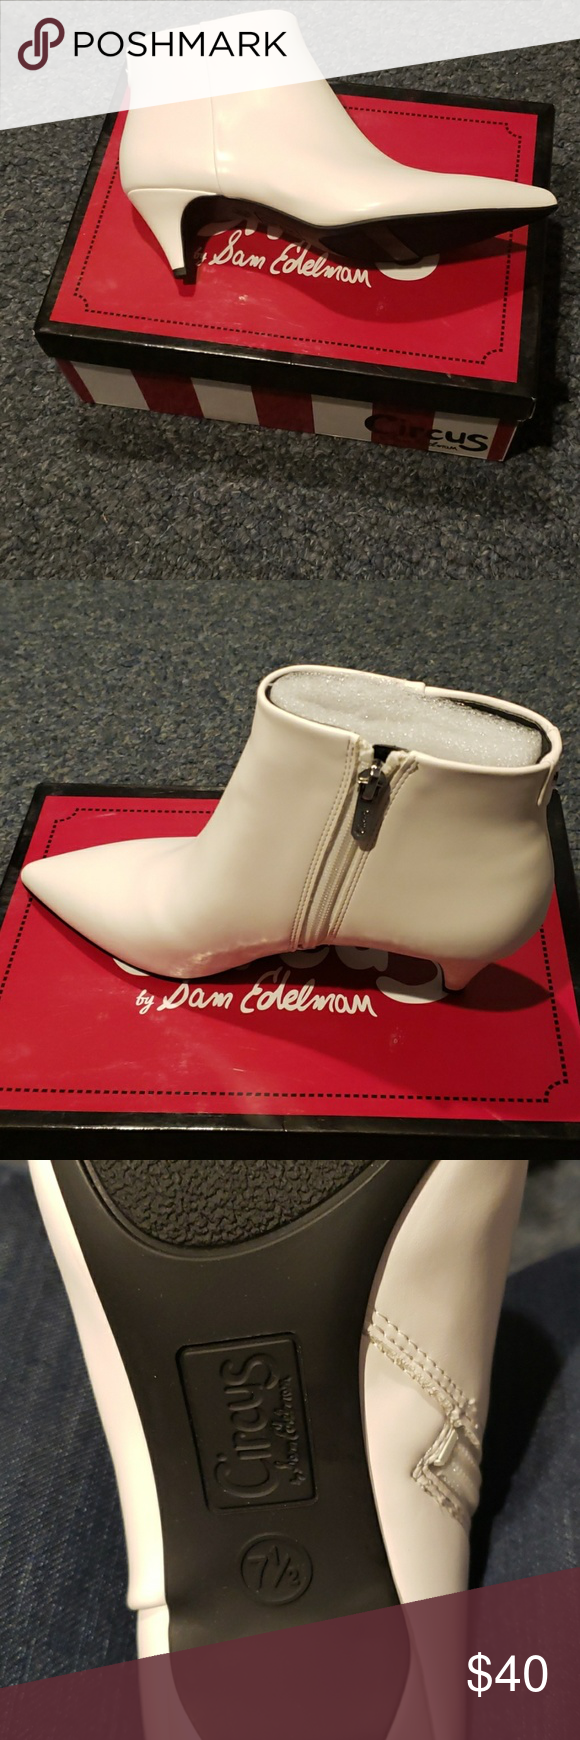 5e333b6ecc Circus by Sam Edelman Kirby Booties, created for Macy's, bright white,  never worn 7.5 M Circus by Sam Edelman Shoes Heeled Boots